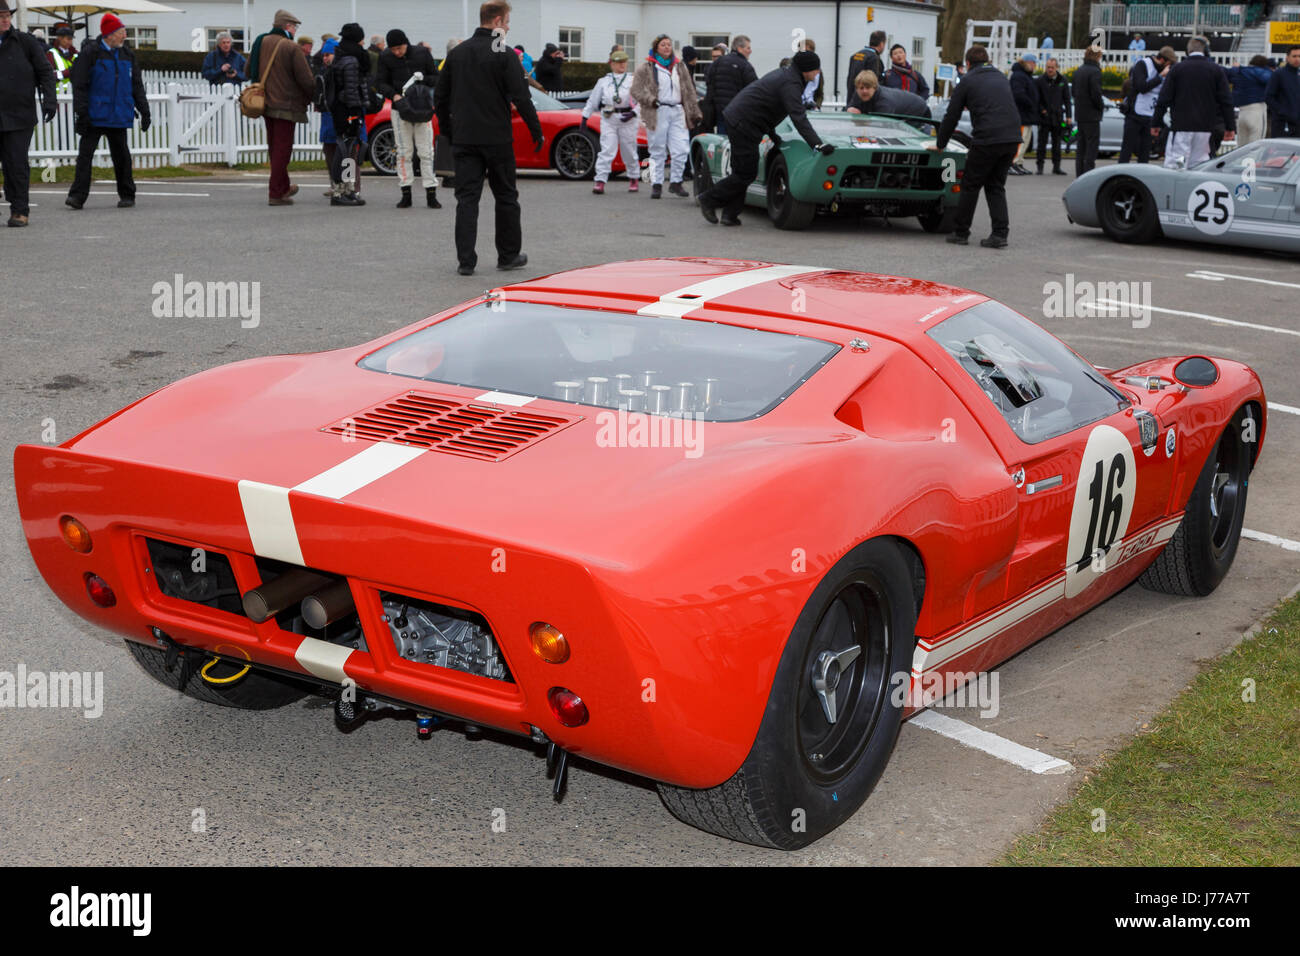 1965 Ford GT40 of Manuel Ferrao and Jim Farley in the paddock at Goodwood GRRC 74th Members Meeting, Sussex, UK. Stock Photo